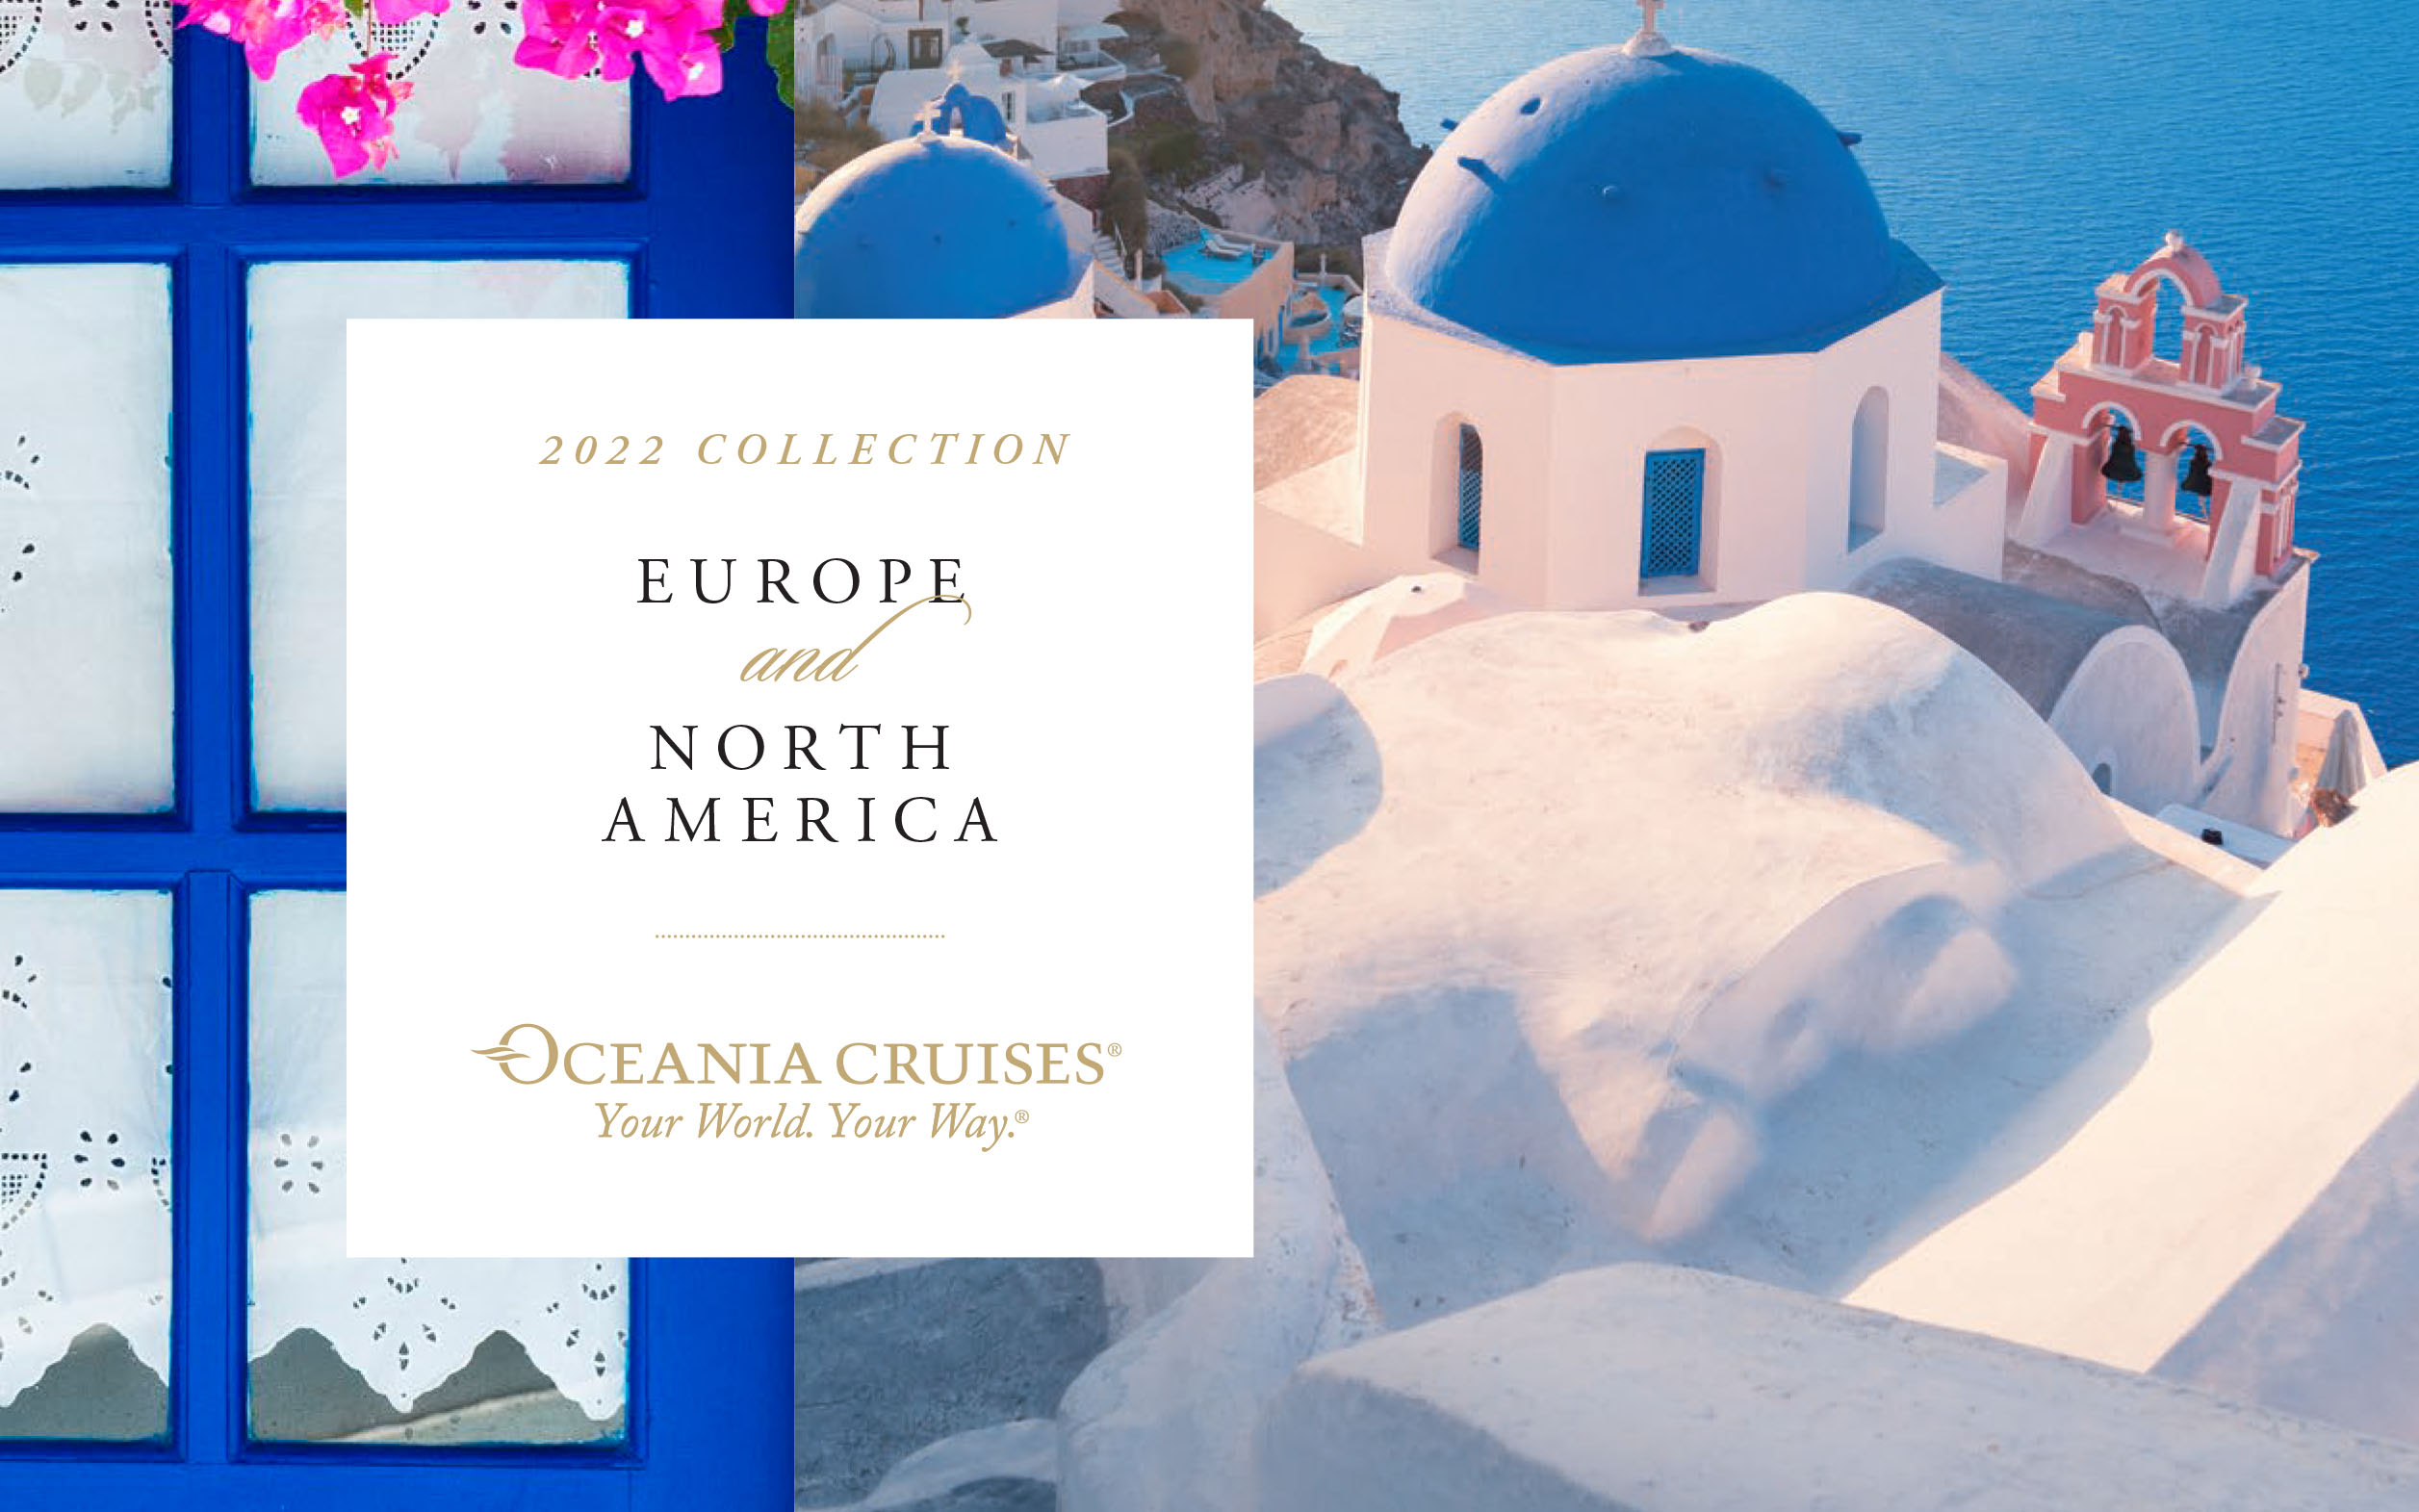 Oceania - New 2022 Voyages Feature 2 for 1 Cruise Fares, Roundtrip Airfare, plus choose one Free Amenity